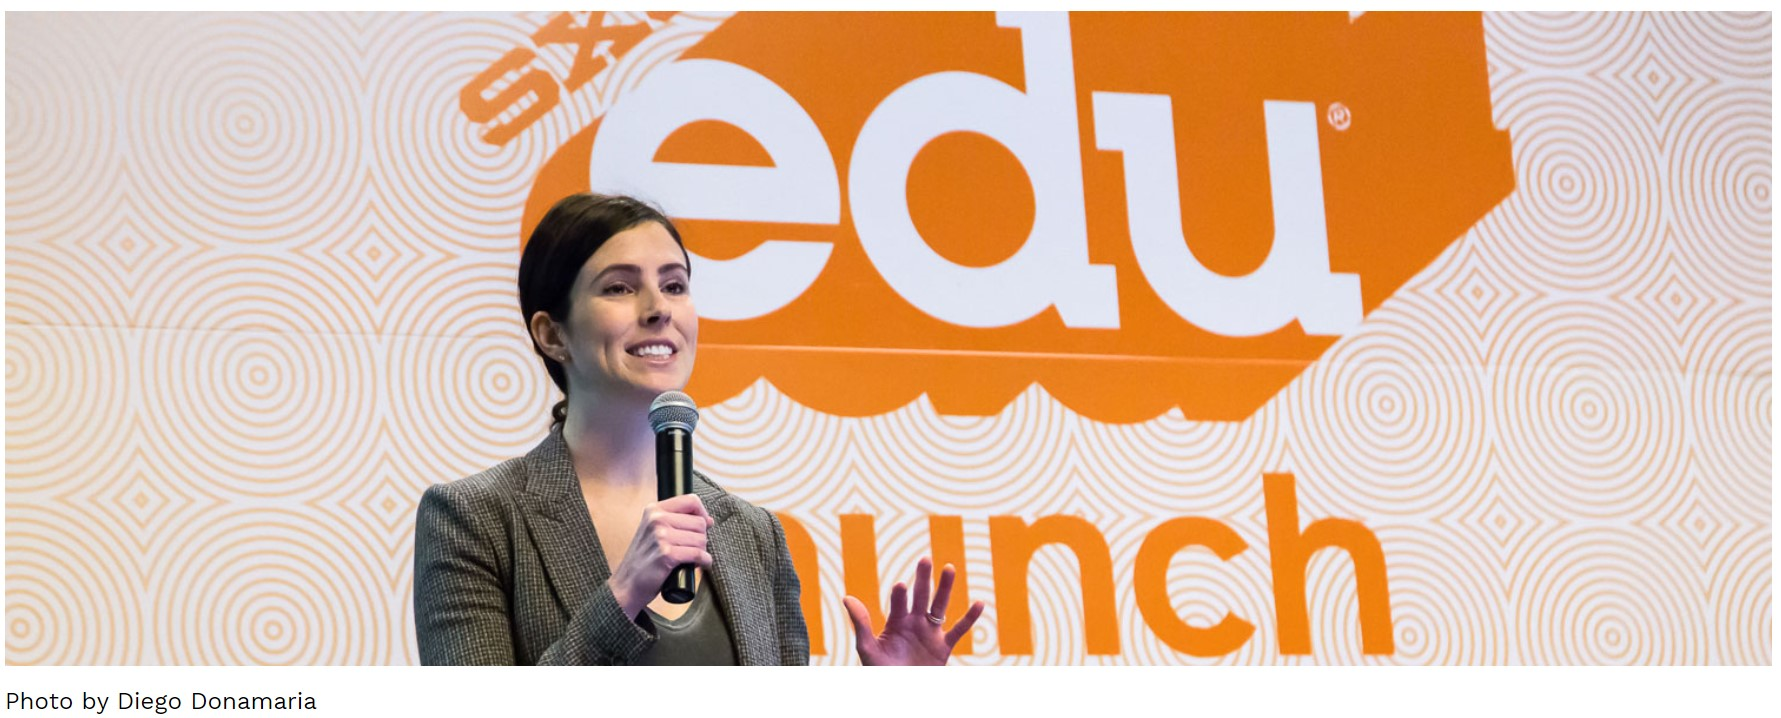 SXSWedu  3/8/17  Ten education startups took the stage at SXSWedu 2017 yesterday to pitch their early-stage companies to a jury of education experts and live audience. We are thrilled to announce that Teachers Connect,The Graide Network and The Whether powered by Better Weekdays have been selected to advance to the final round of the competition.